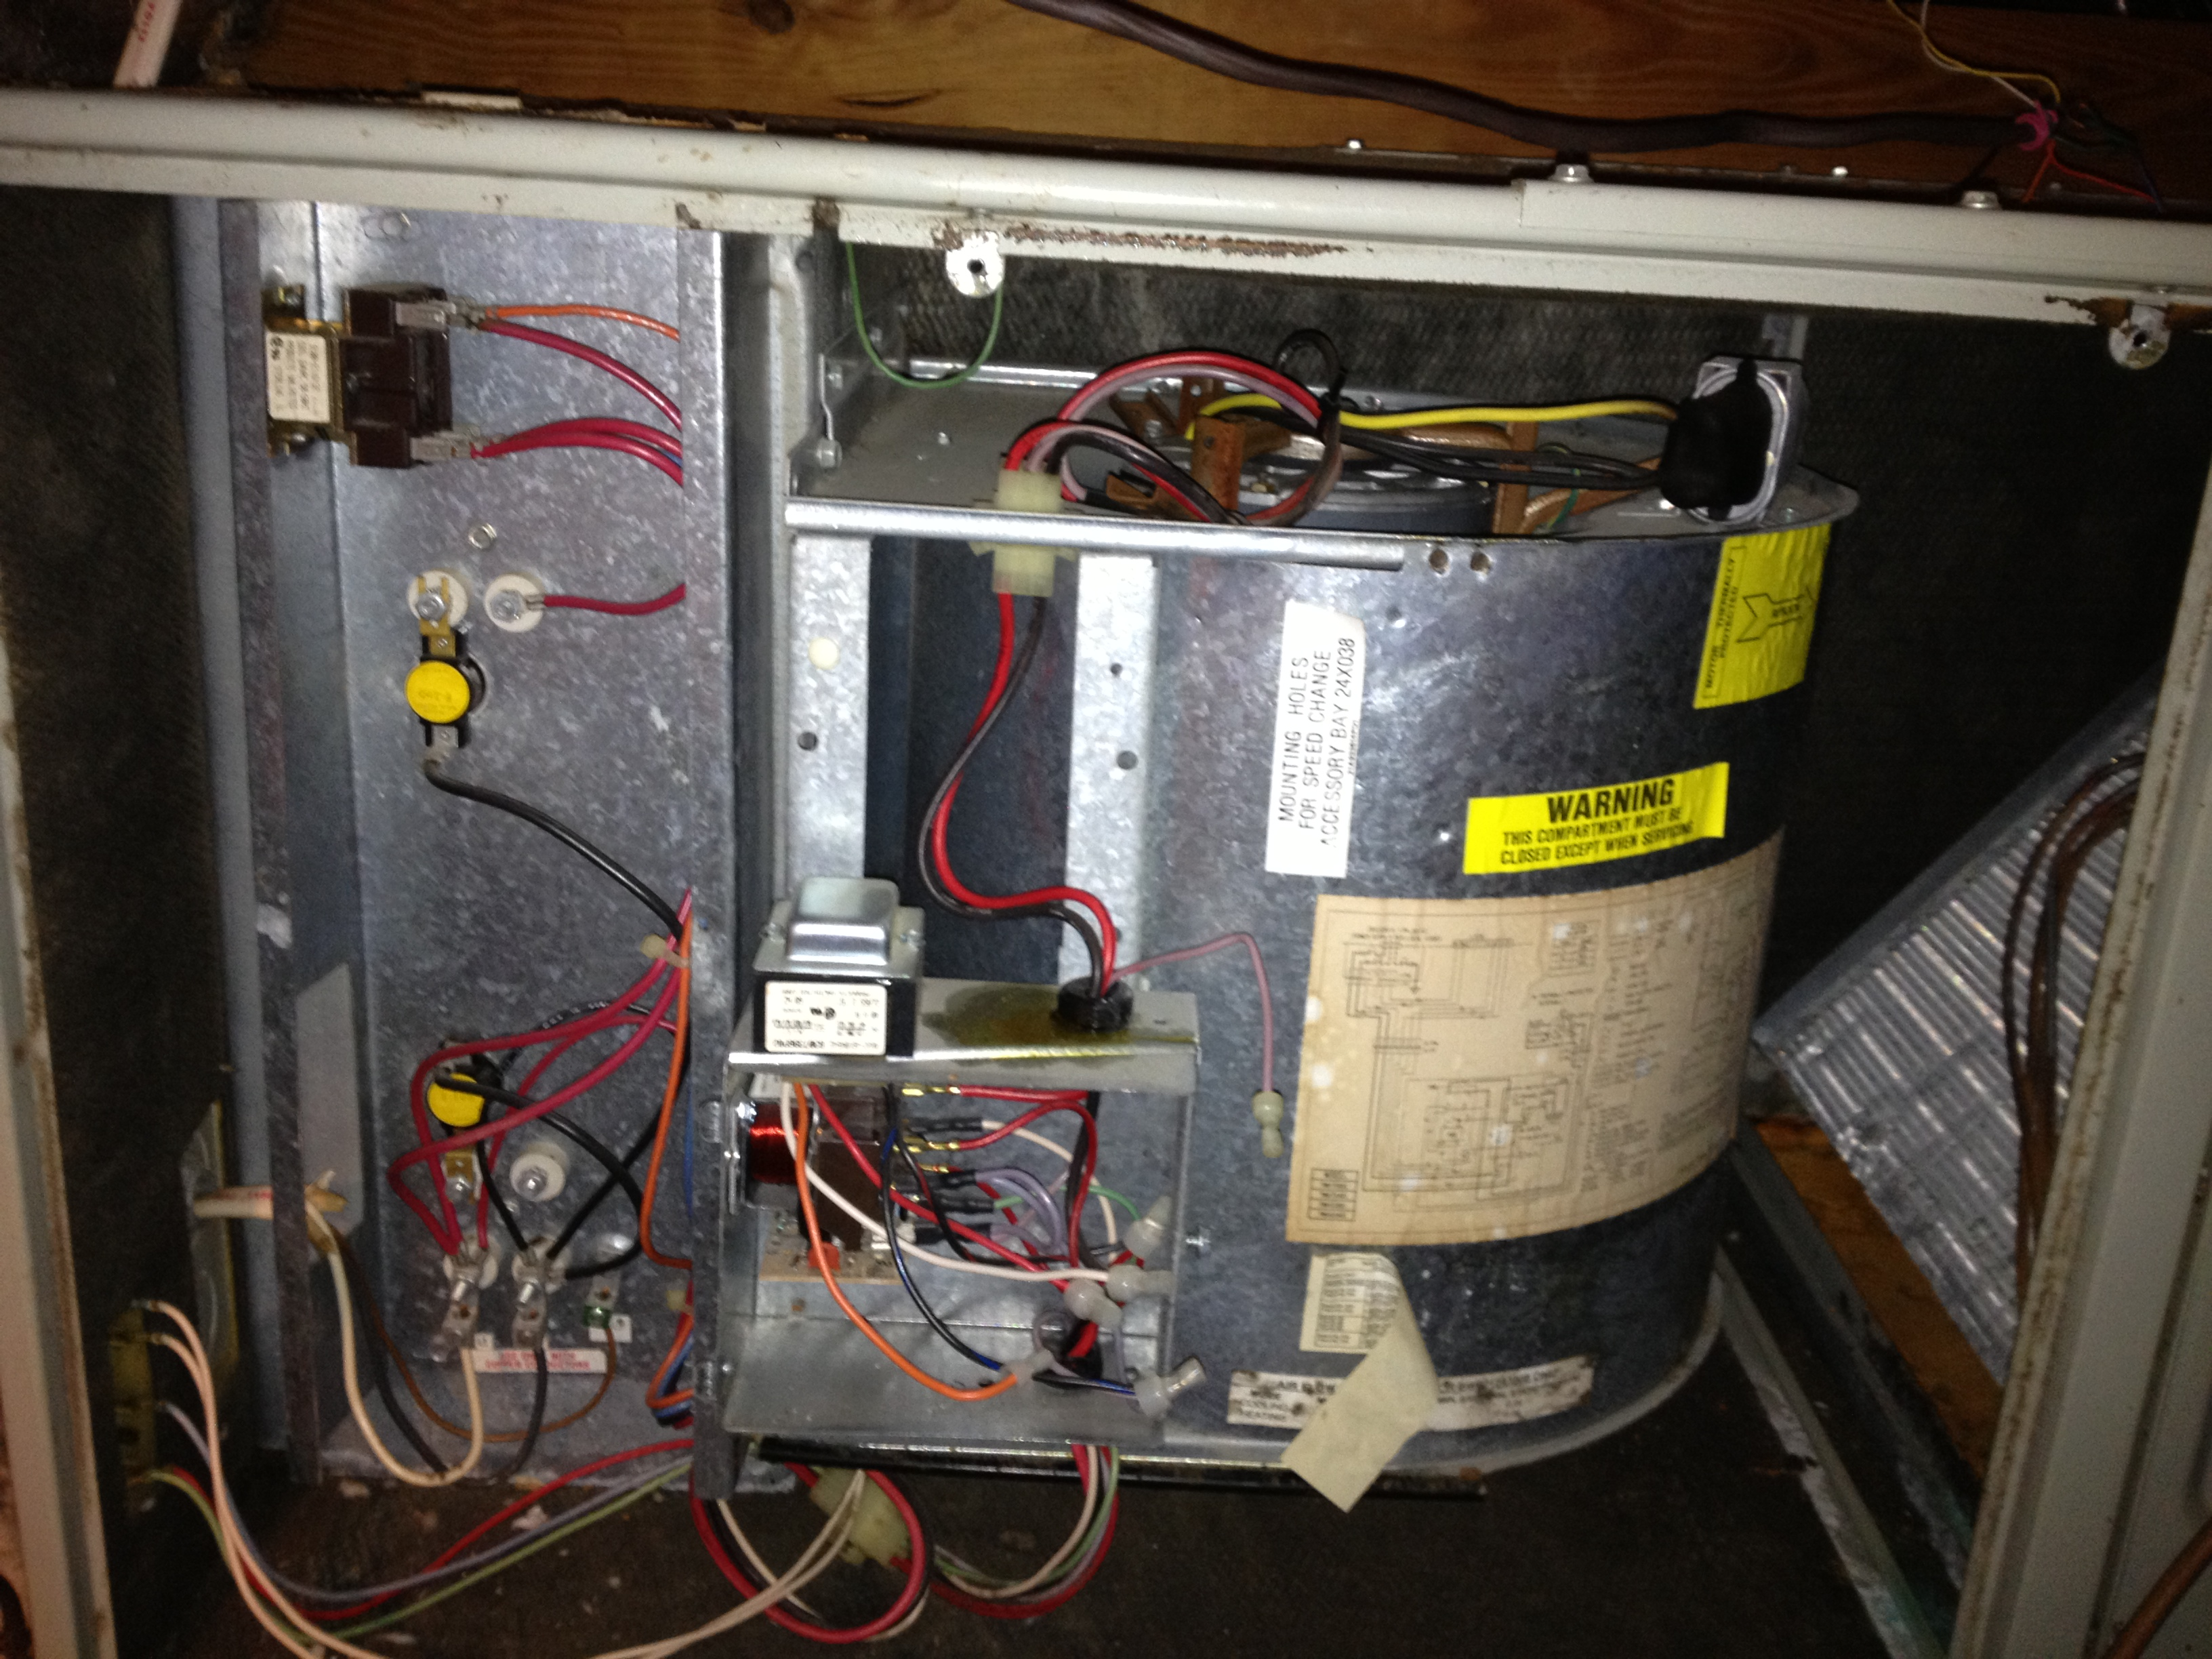 3 phase electric duct heater wiring diagram 1986 chevy truck ignition switch air handler fuse location fan elsavadorla